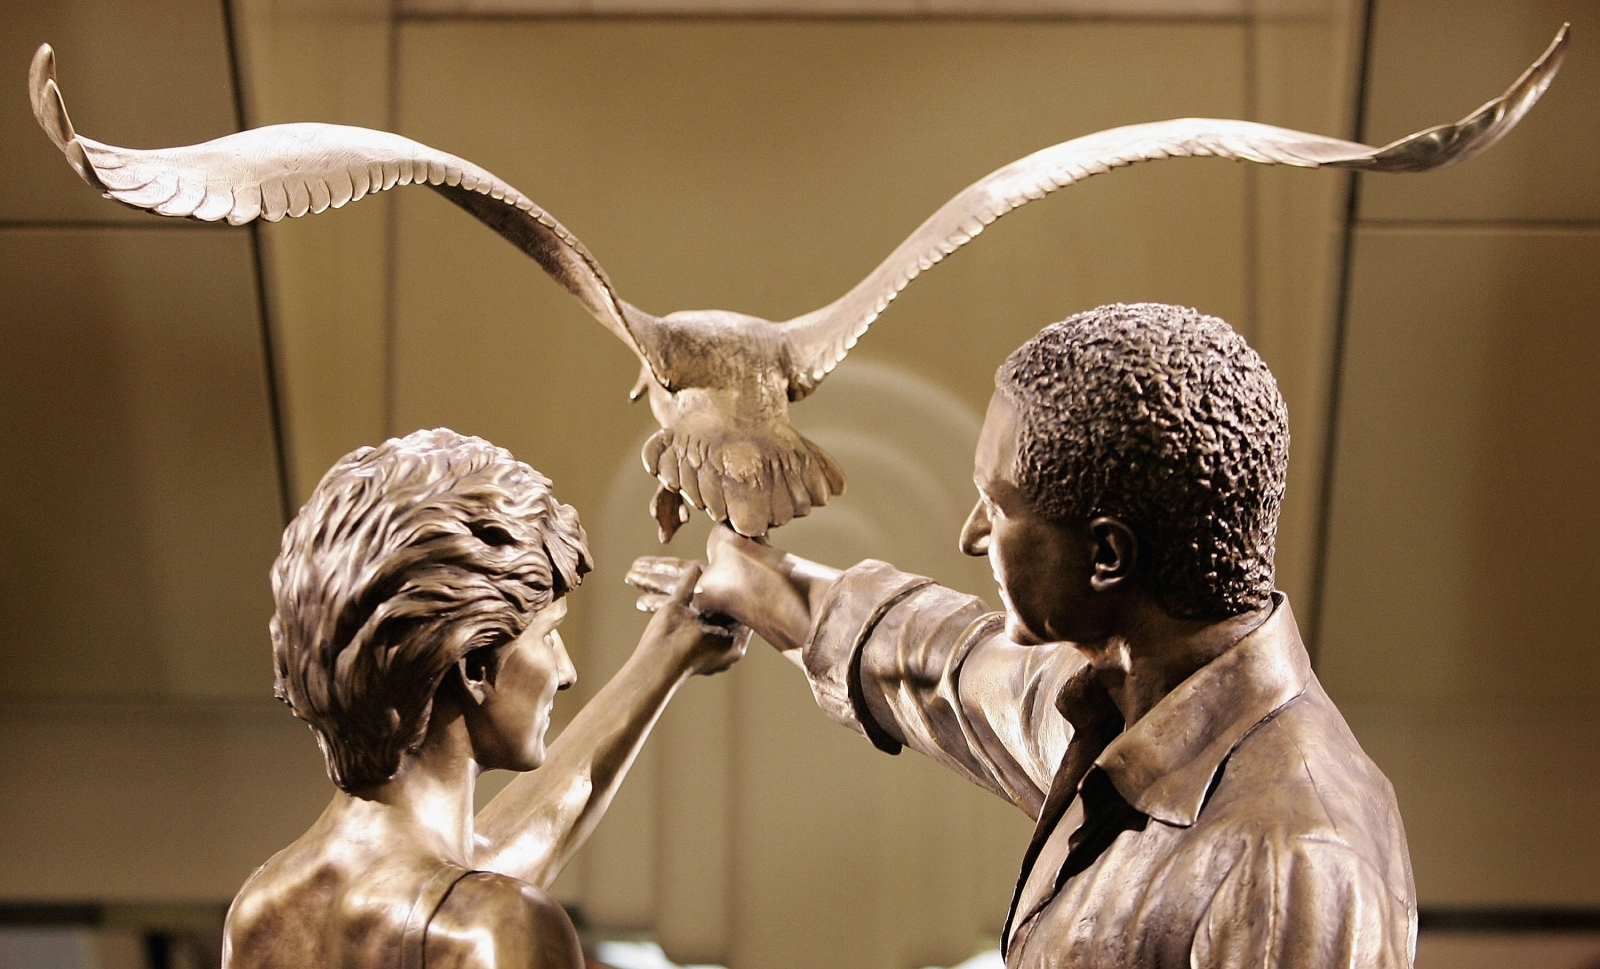 Princess Of Wales Memorial Unveiled At Harrods